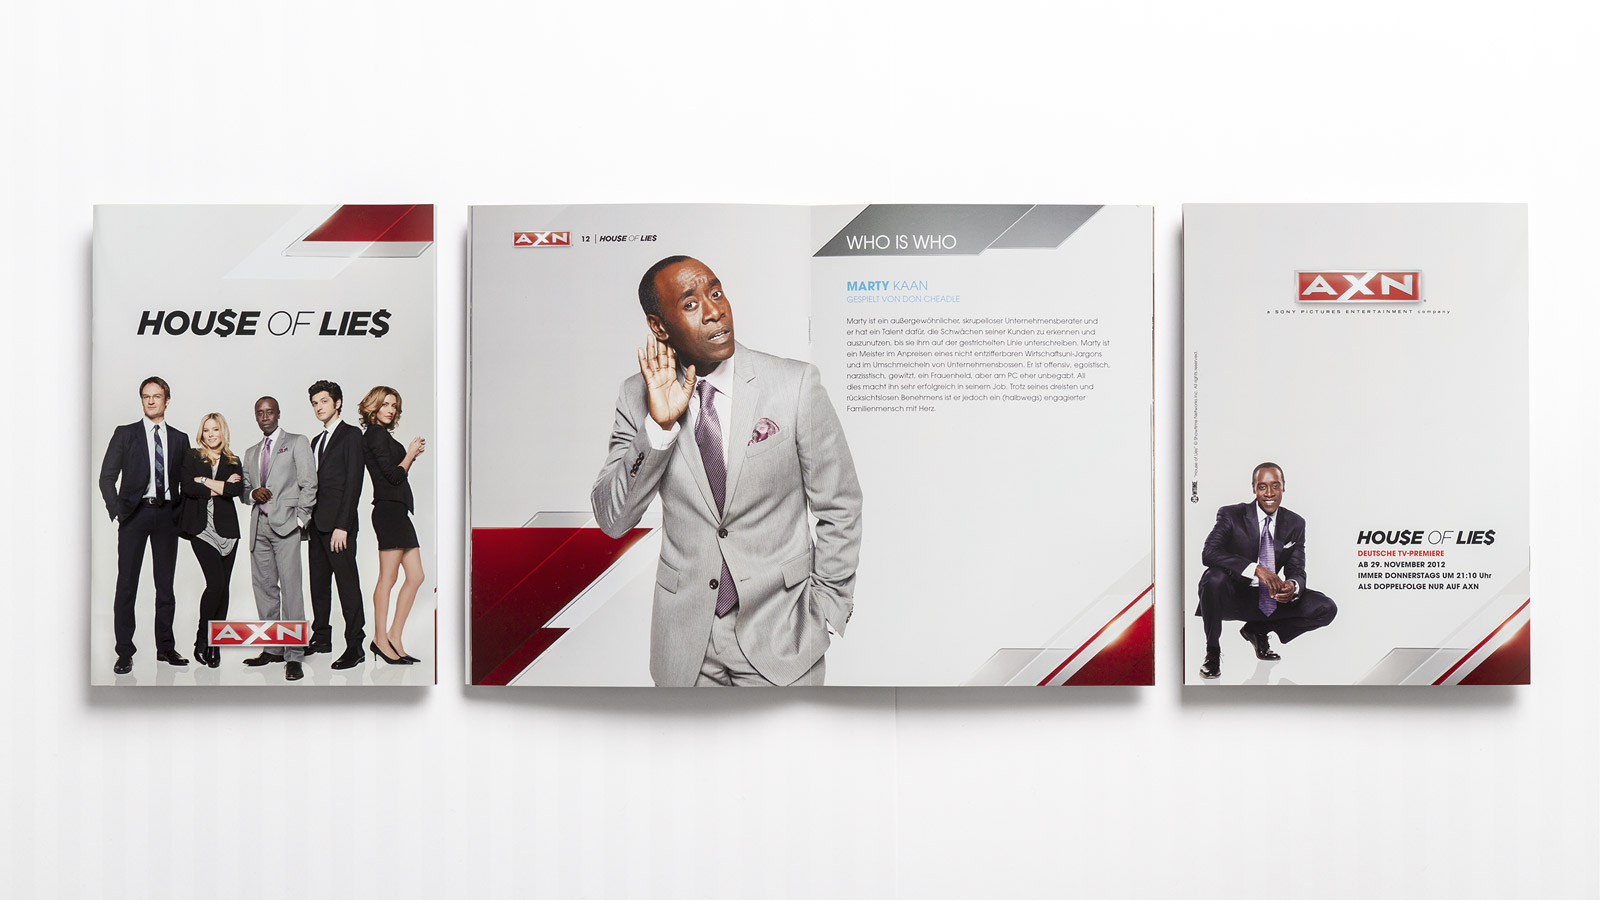 A X N, House of Lies press kit brochure, opened and closed